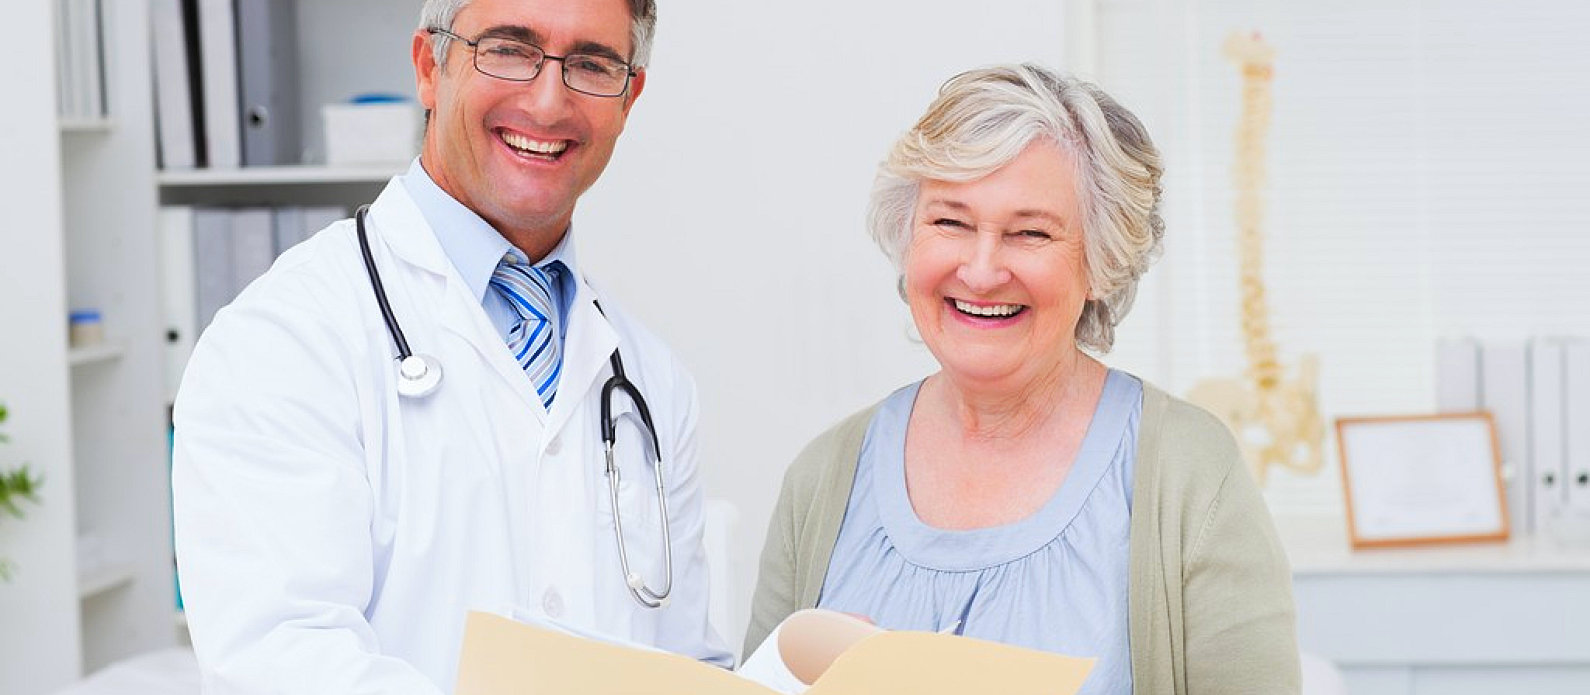 a male doctor and a female patient smiling